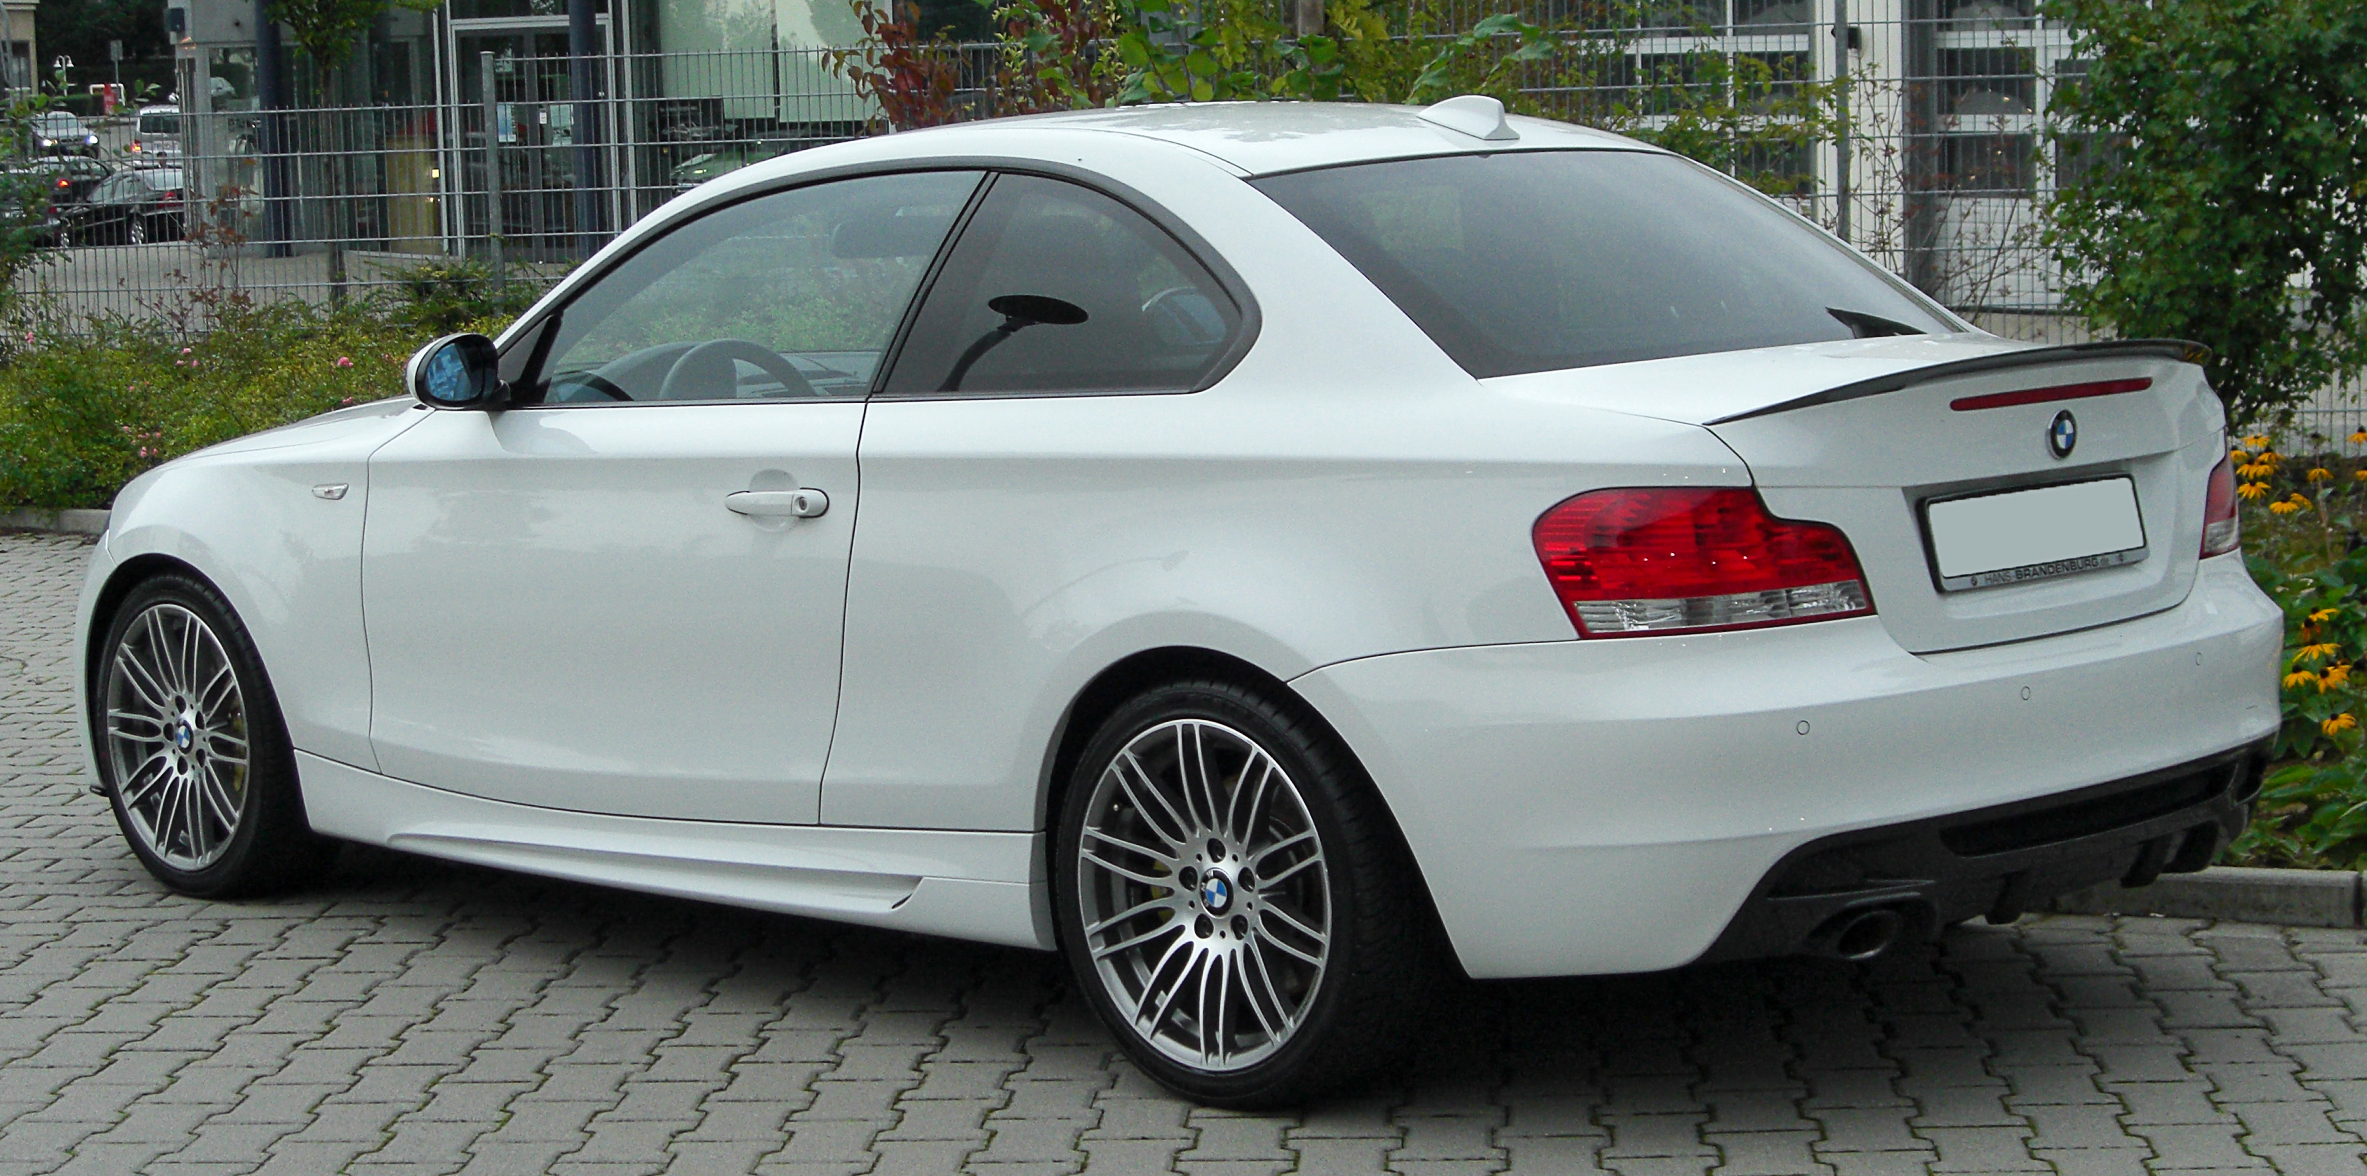 bmw 1er m coupe (e82) 2012 images #13